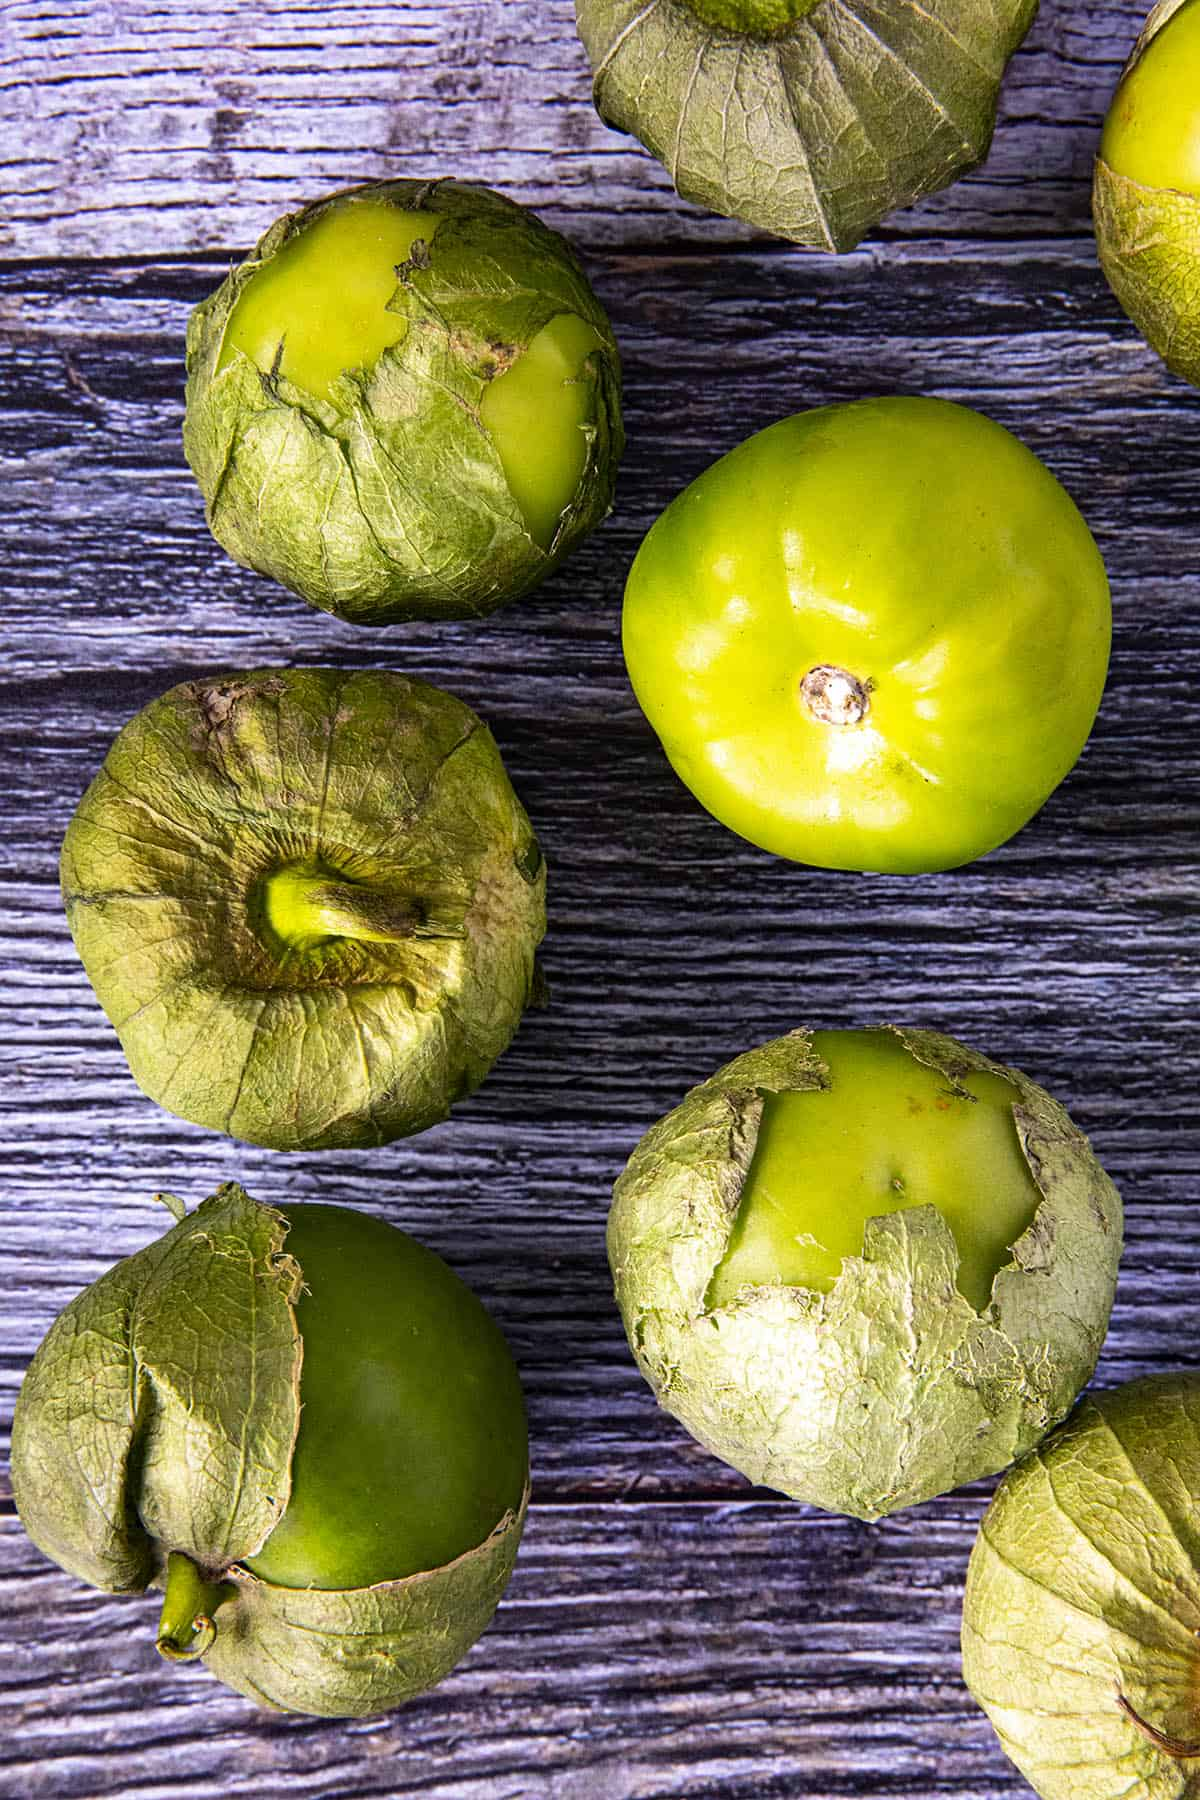 Tomatillo – What is a Tomatillo?